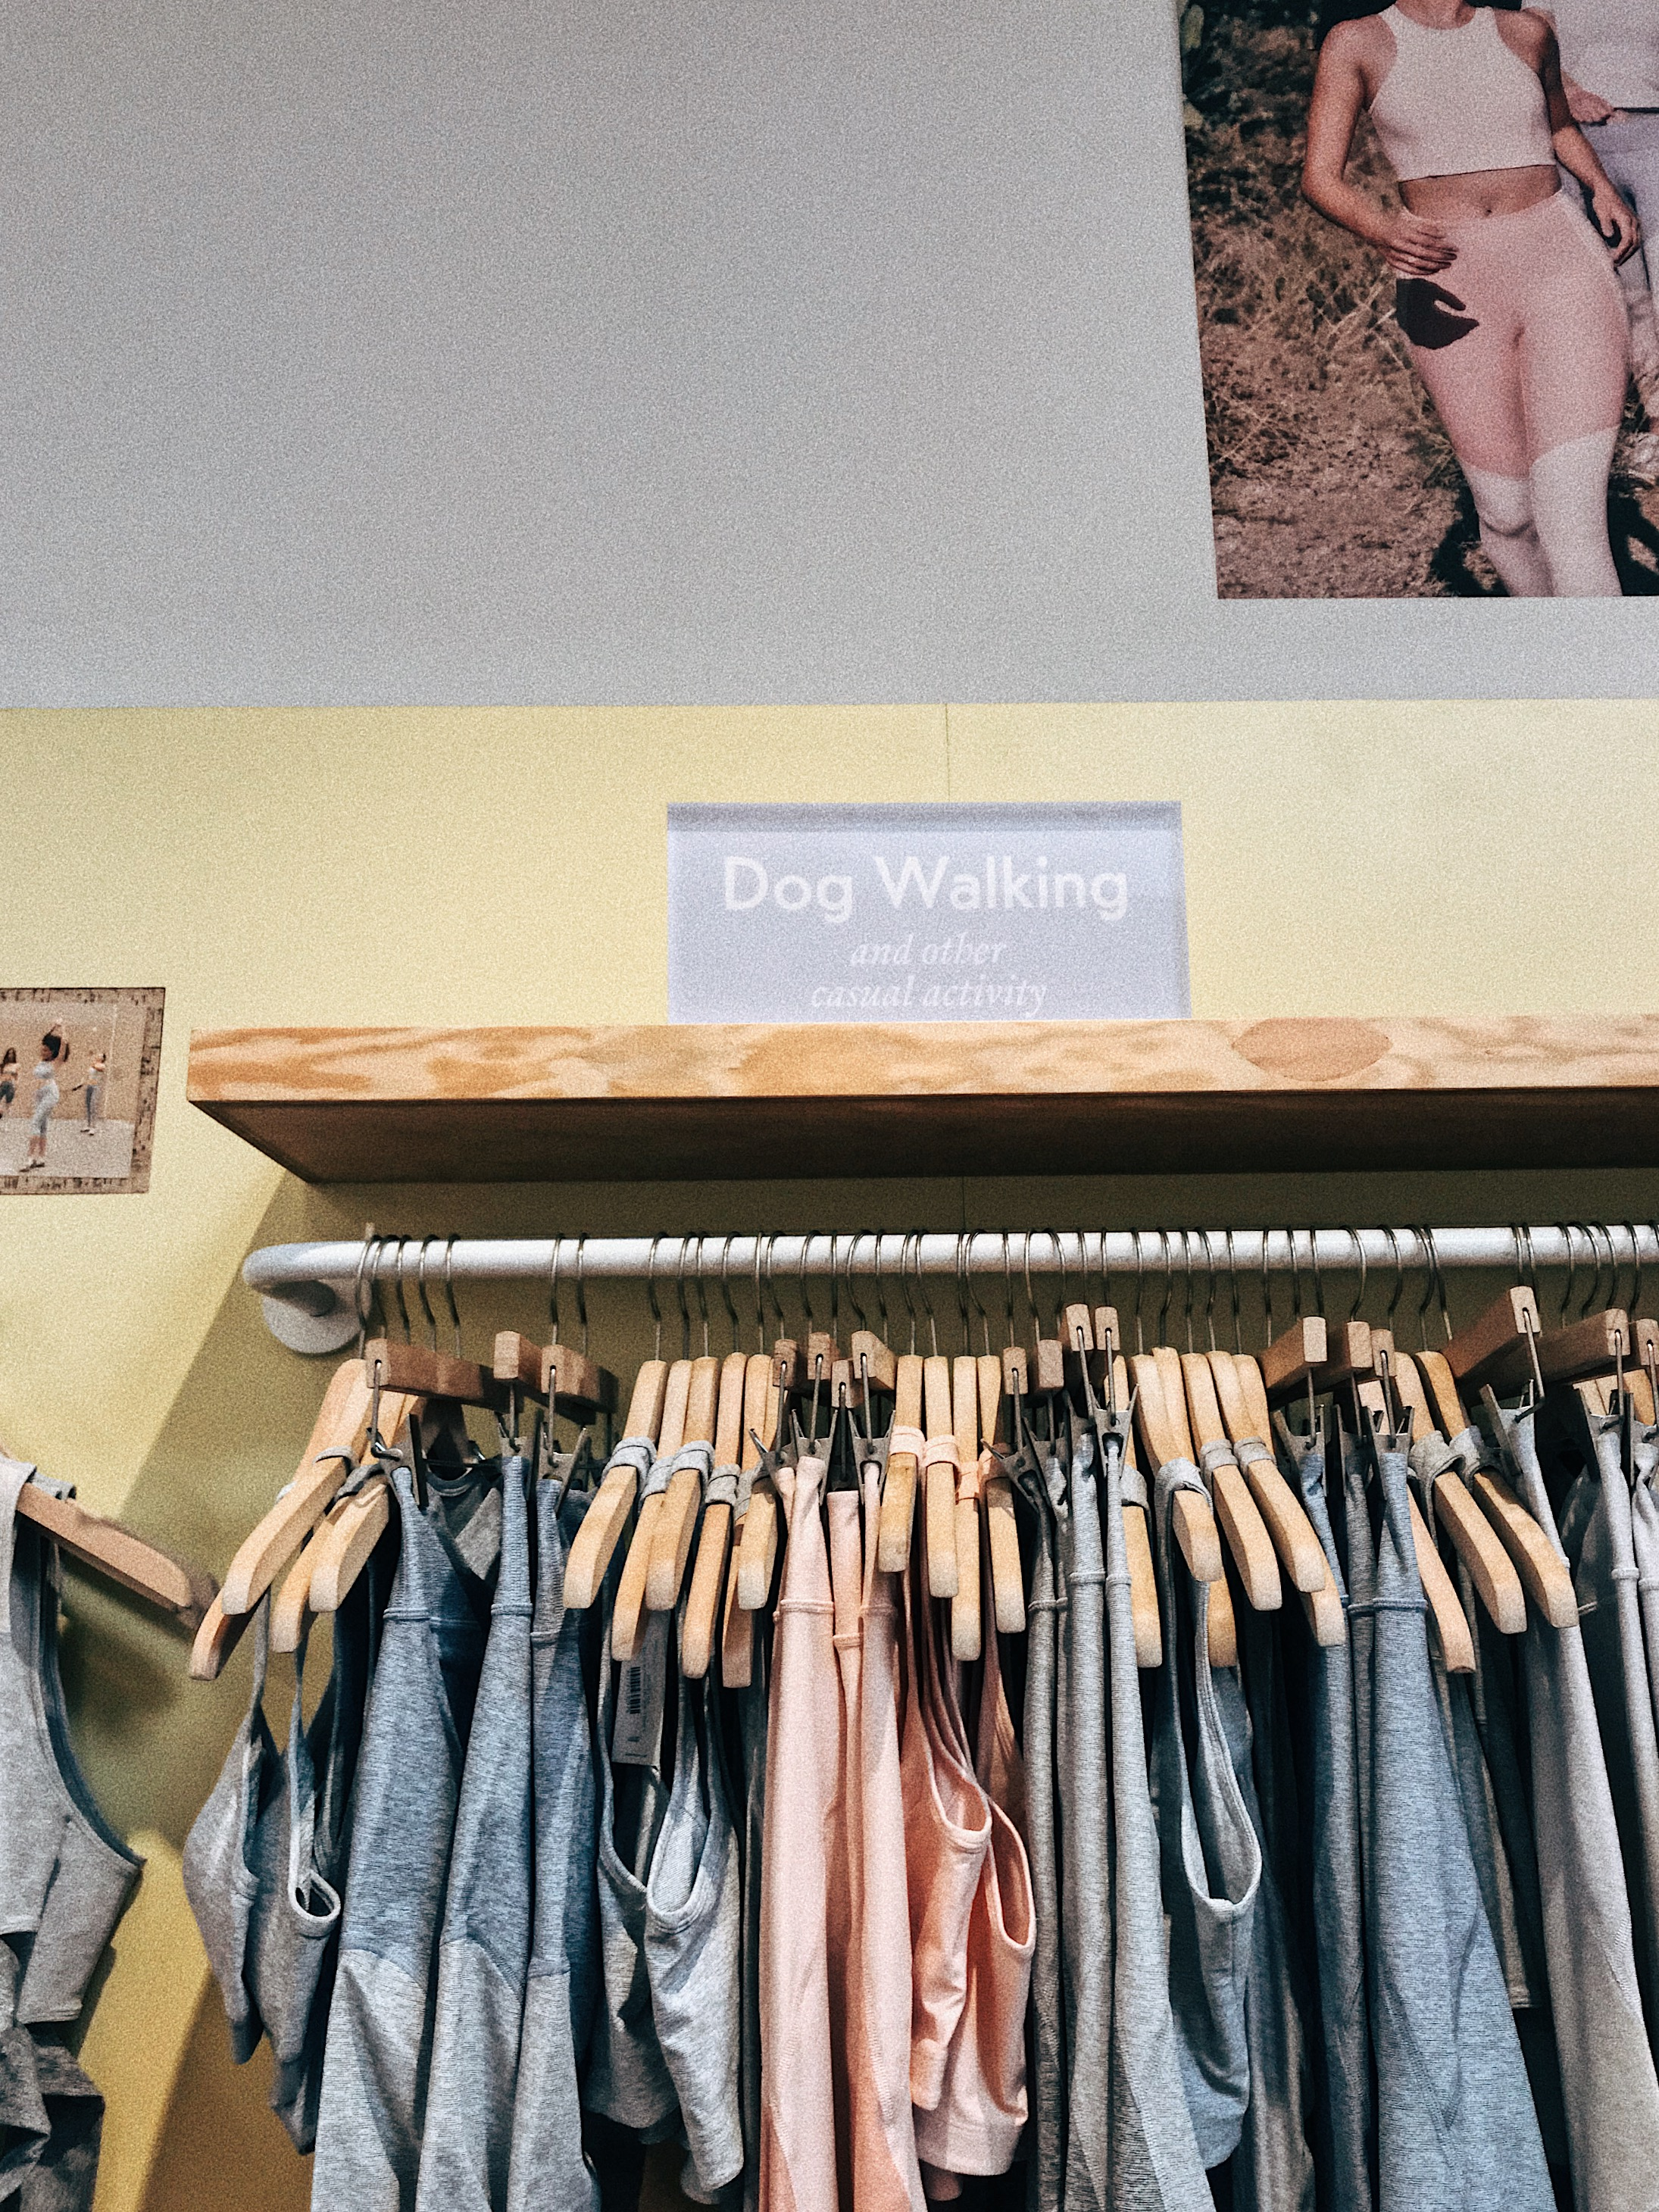 """Jury is still out about how I feel about A)the hype of this brand with people saying its """"the new Lulu"""" pfff. B) expensive loungewear specifically for walking dogs. Question mark. And for someone who friggin loves dogs and will own hundreds one day I'm still like """"reallllllyyyy?"""""""